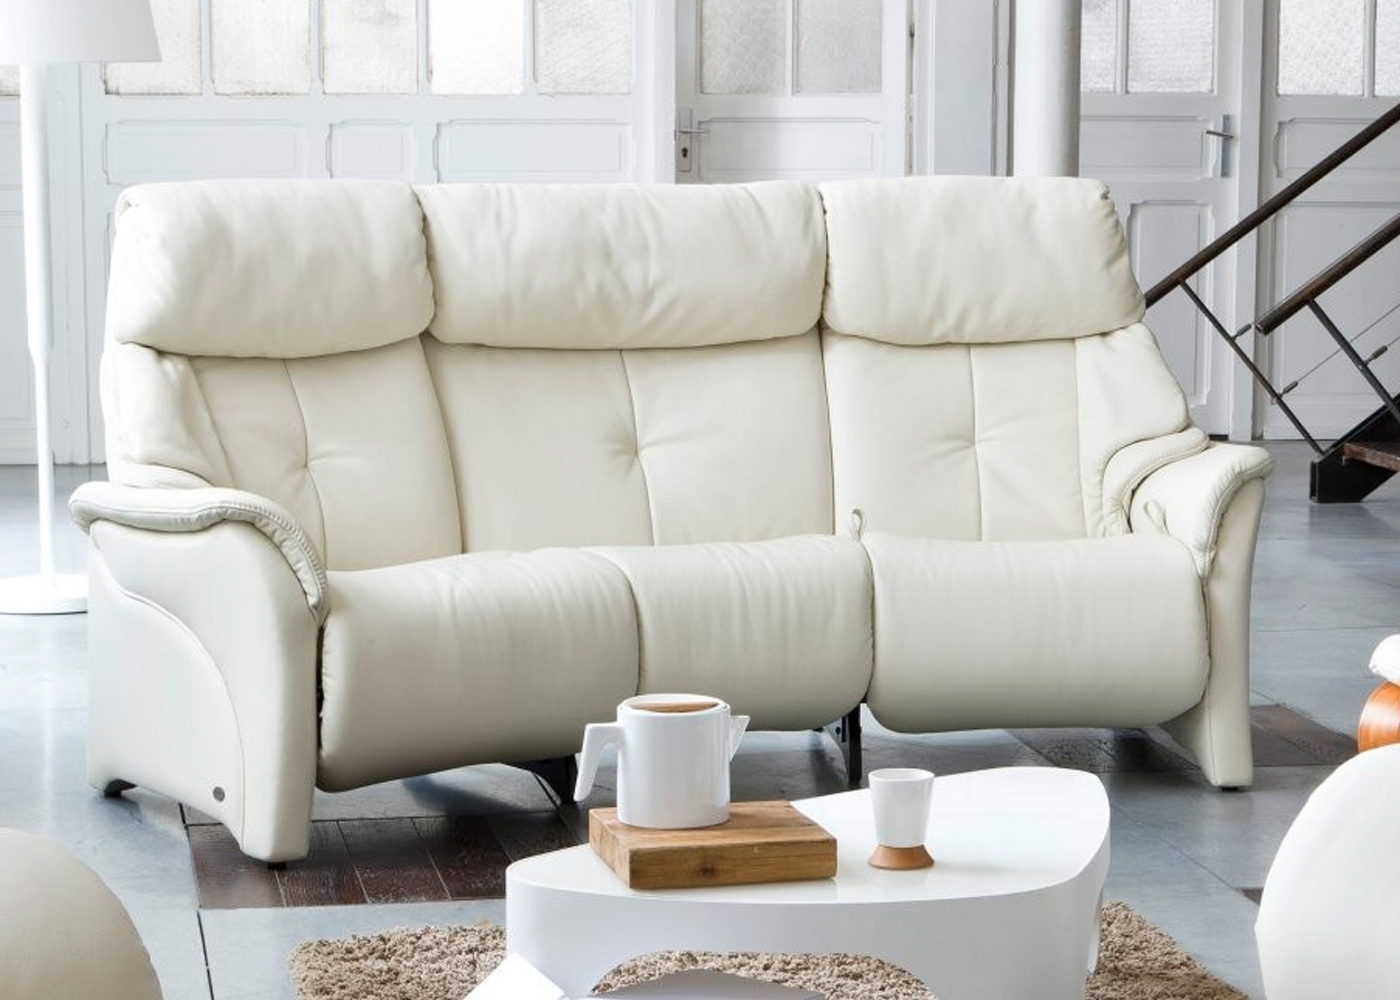 Midfurn Furniture Throughout Curved Recliner Sofas (View 9 of 15)